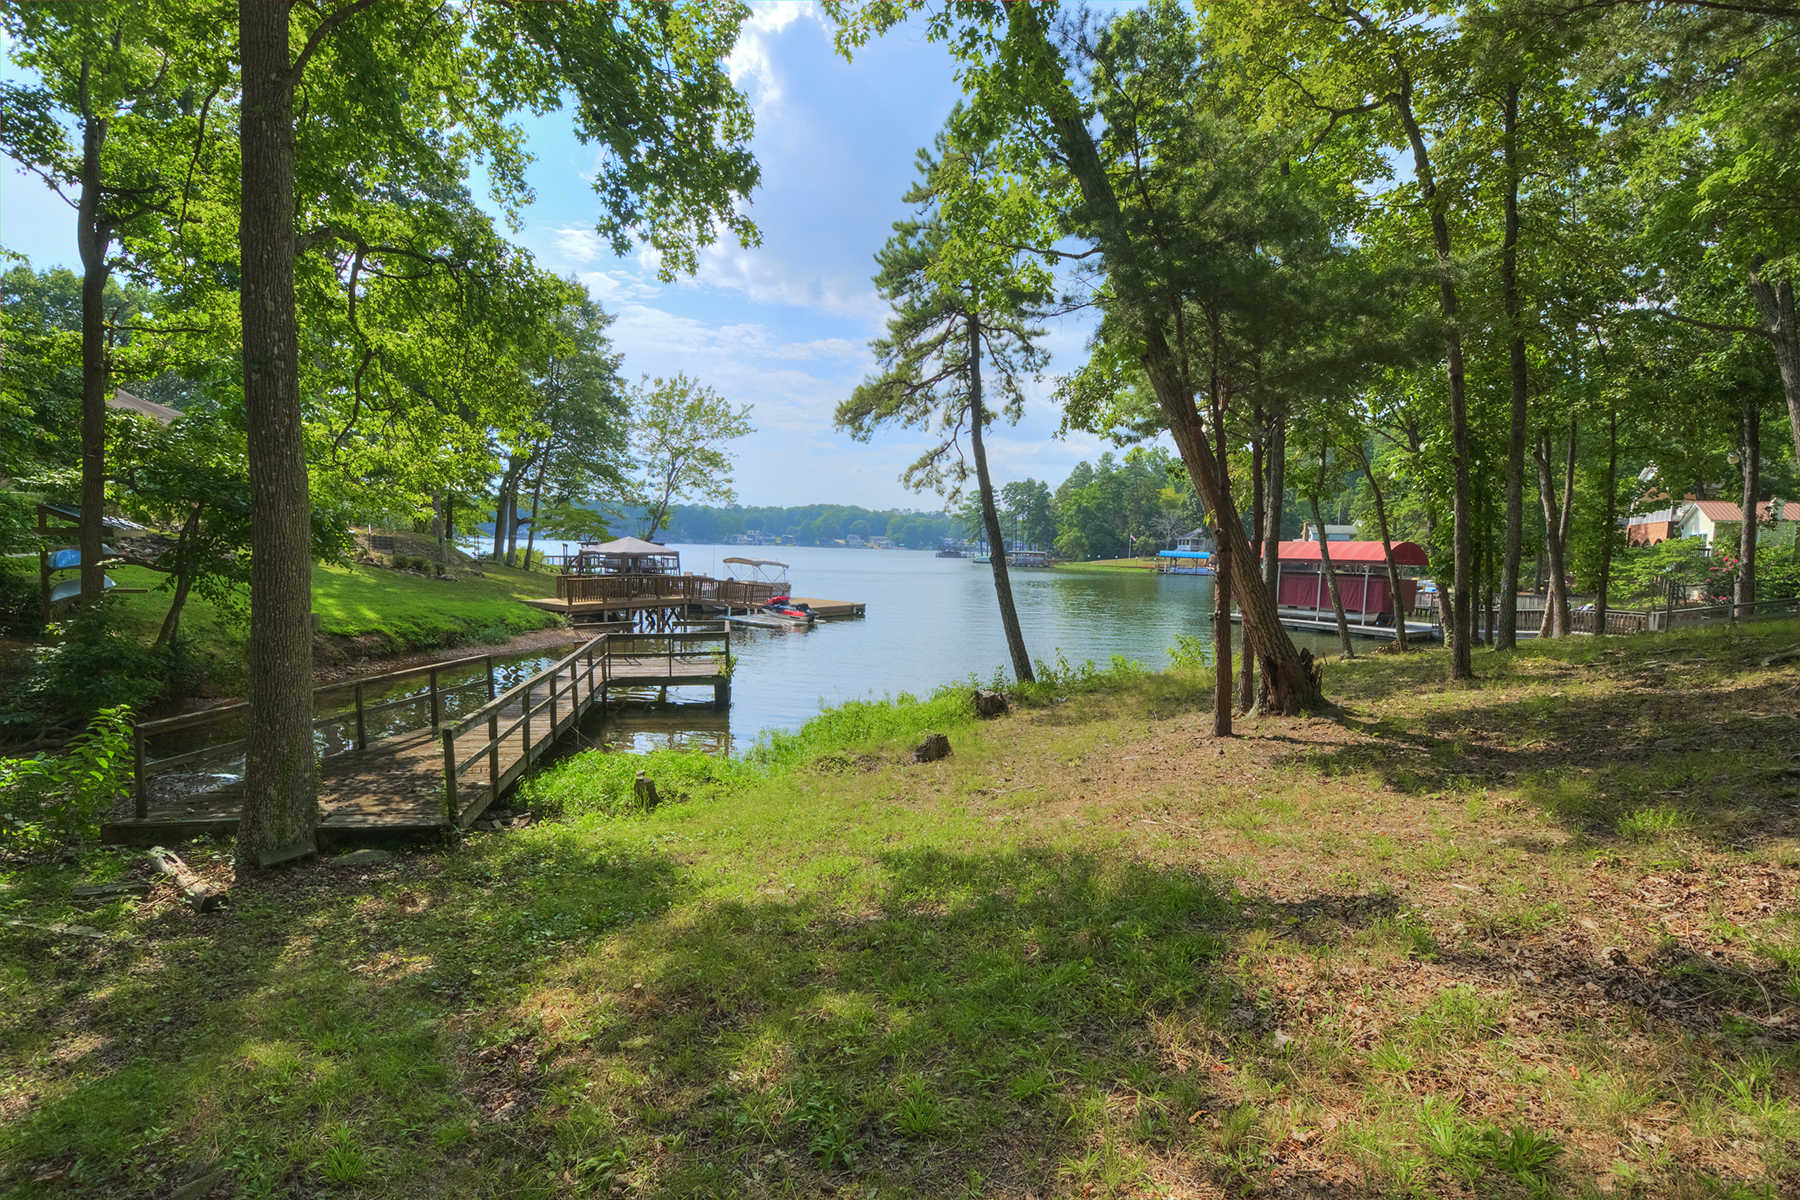 Land for Sale at NEW LONDON 1370 Lakeshore Dr New London, North Carolina, 28127 United States